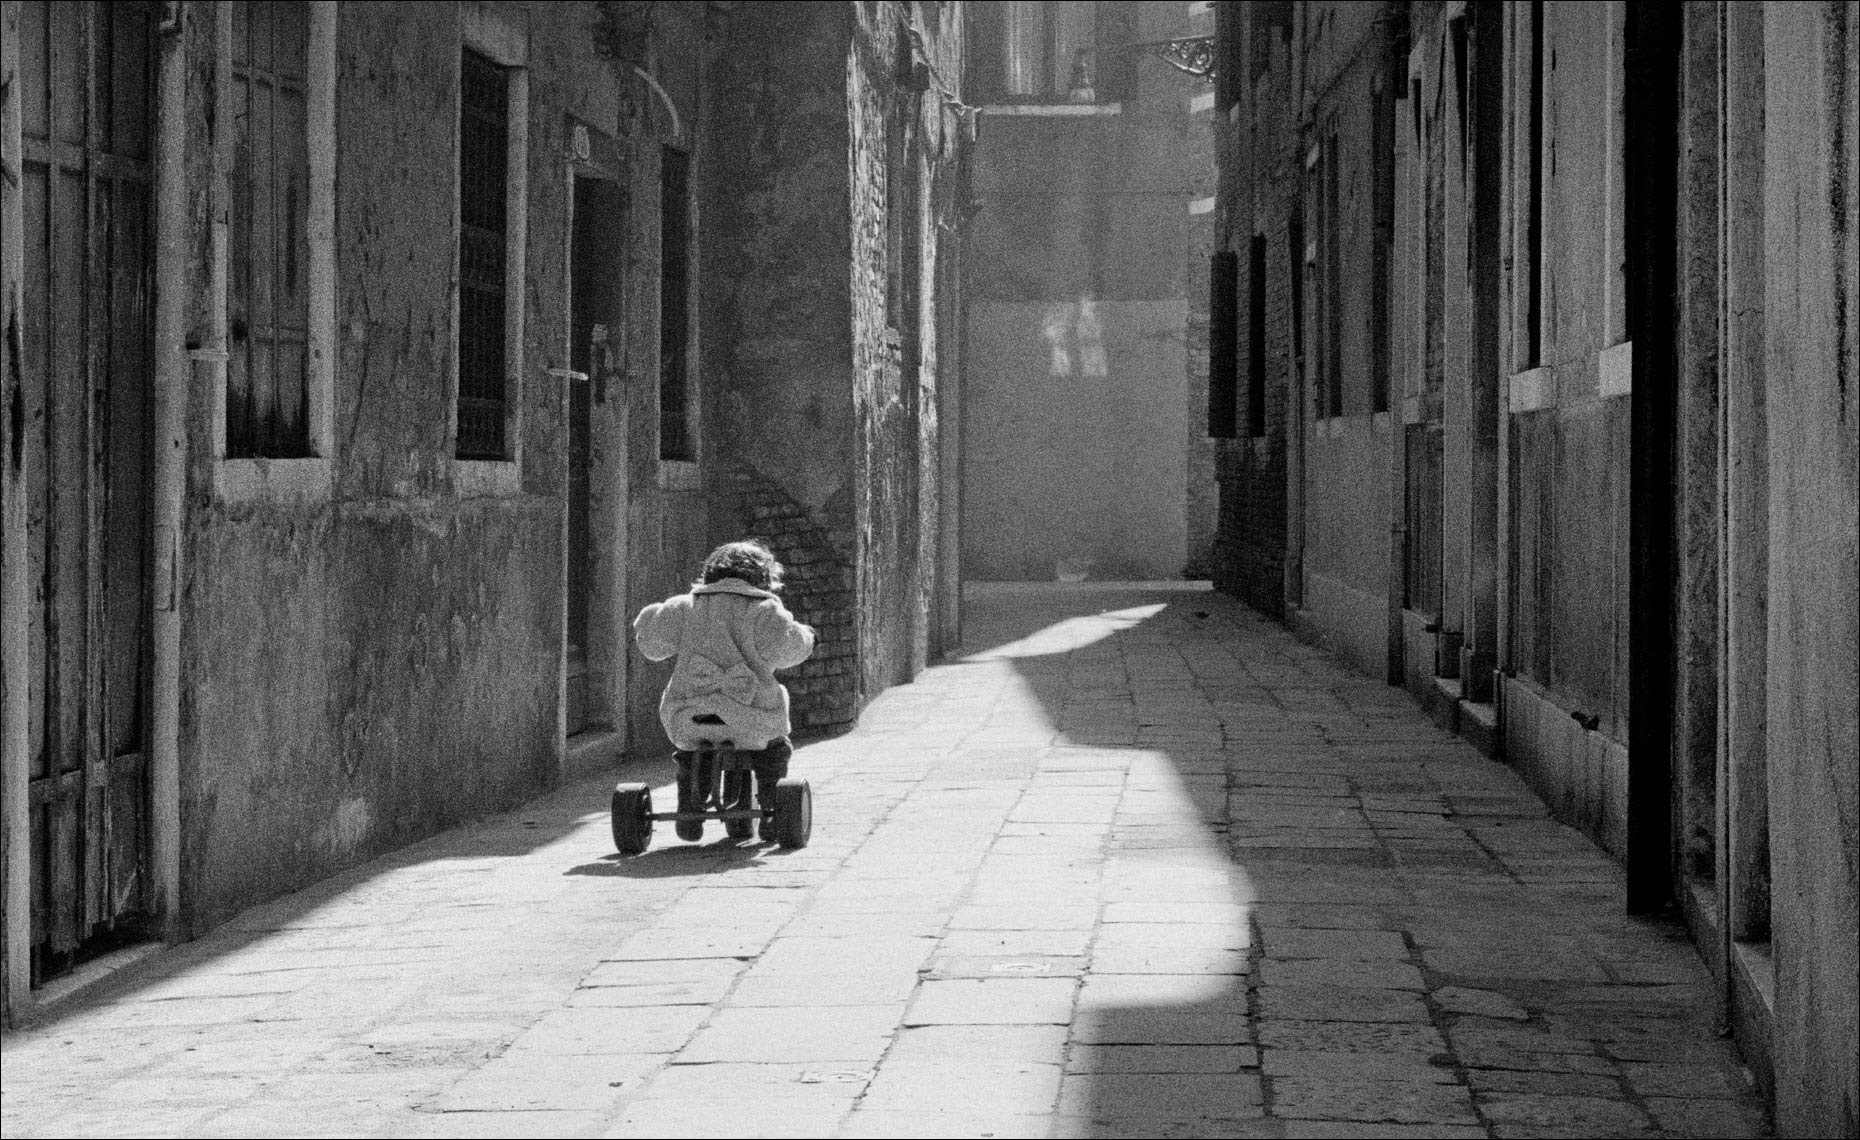 Child on Tricycle, Venice ©Paul Hampton Photographer Glasgow